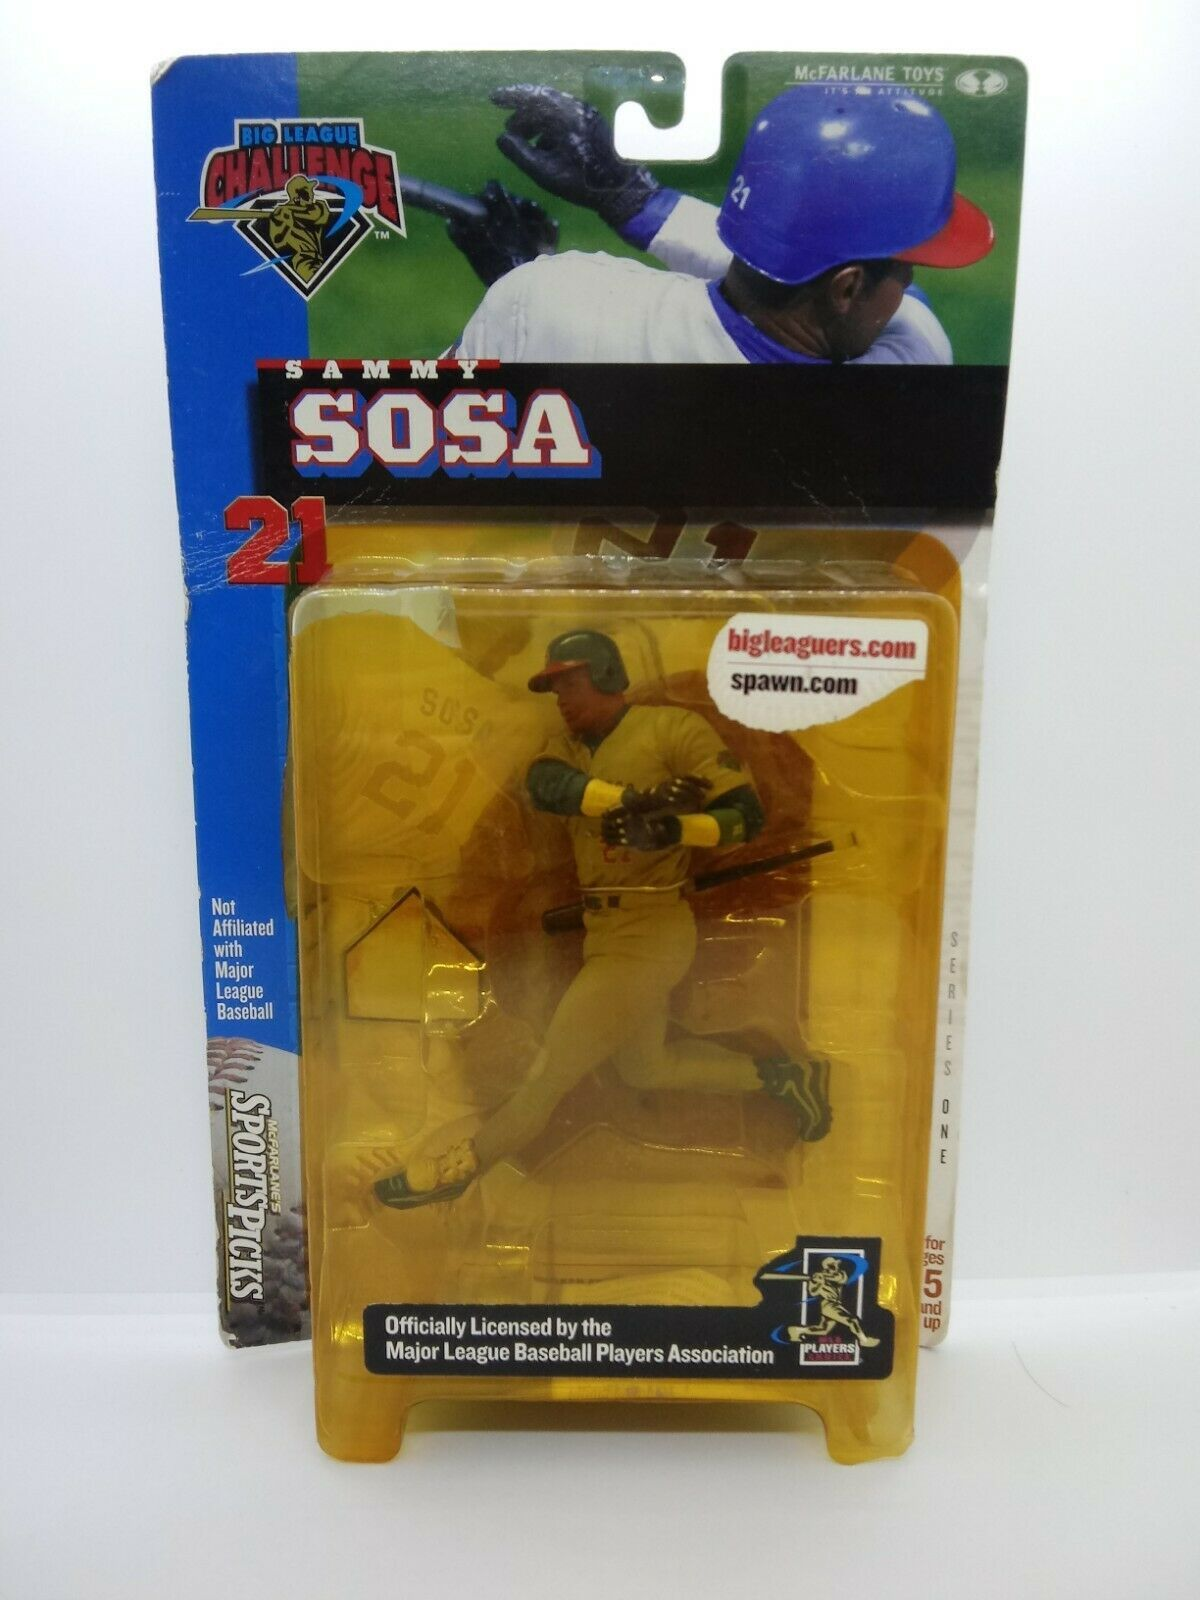 Primary image for McFarlane MLB Sammy Sosa Chicago Cubs Series 1 Big League Challenge Figure